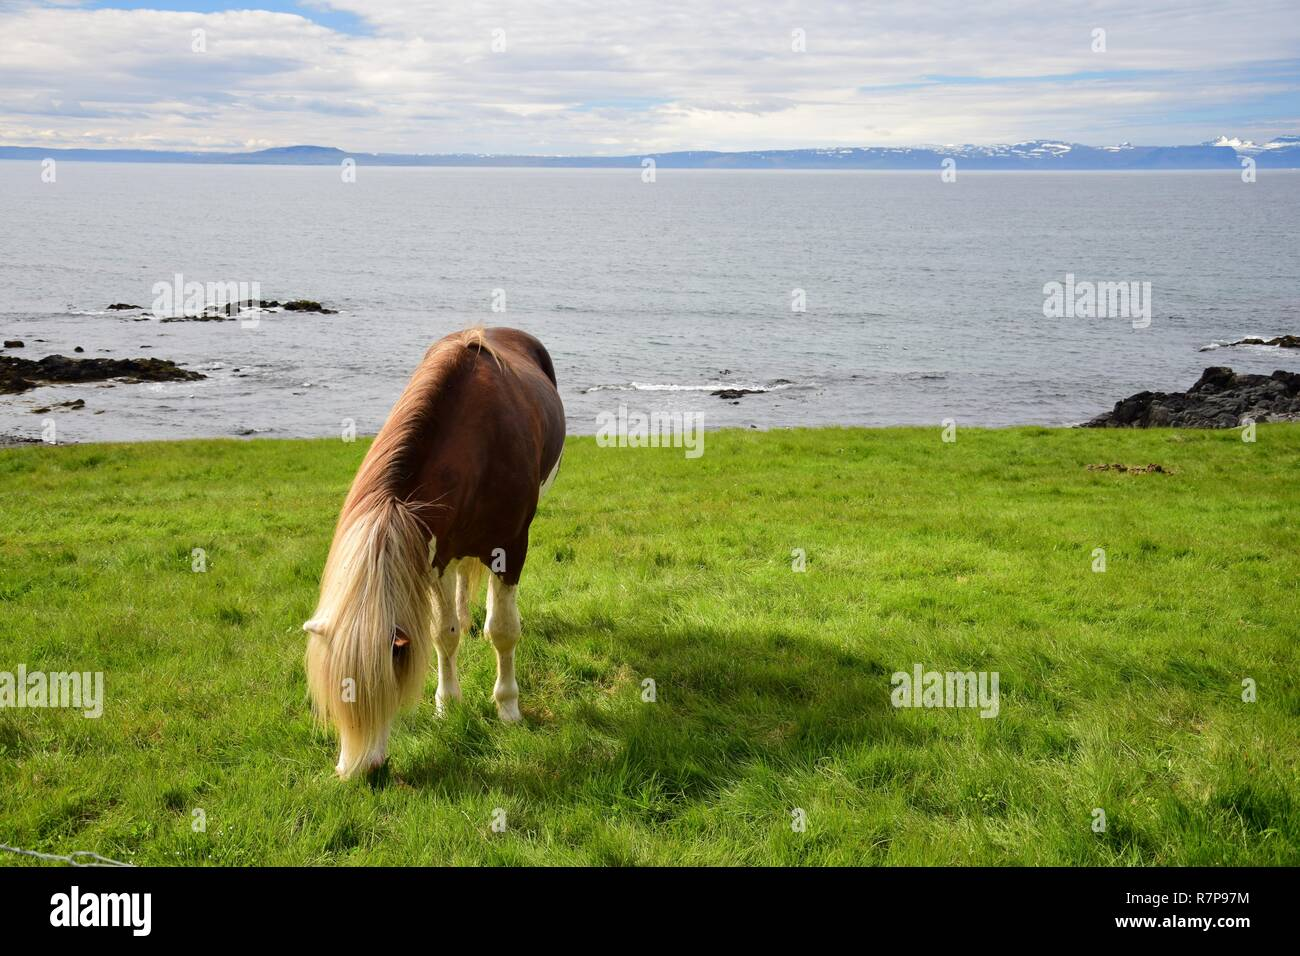 Icelandic stallion in the color splashed white, with white legs and a white head. Icelandic landscape in the background. - Stock Image